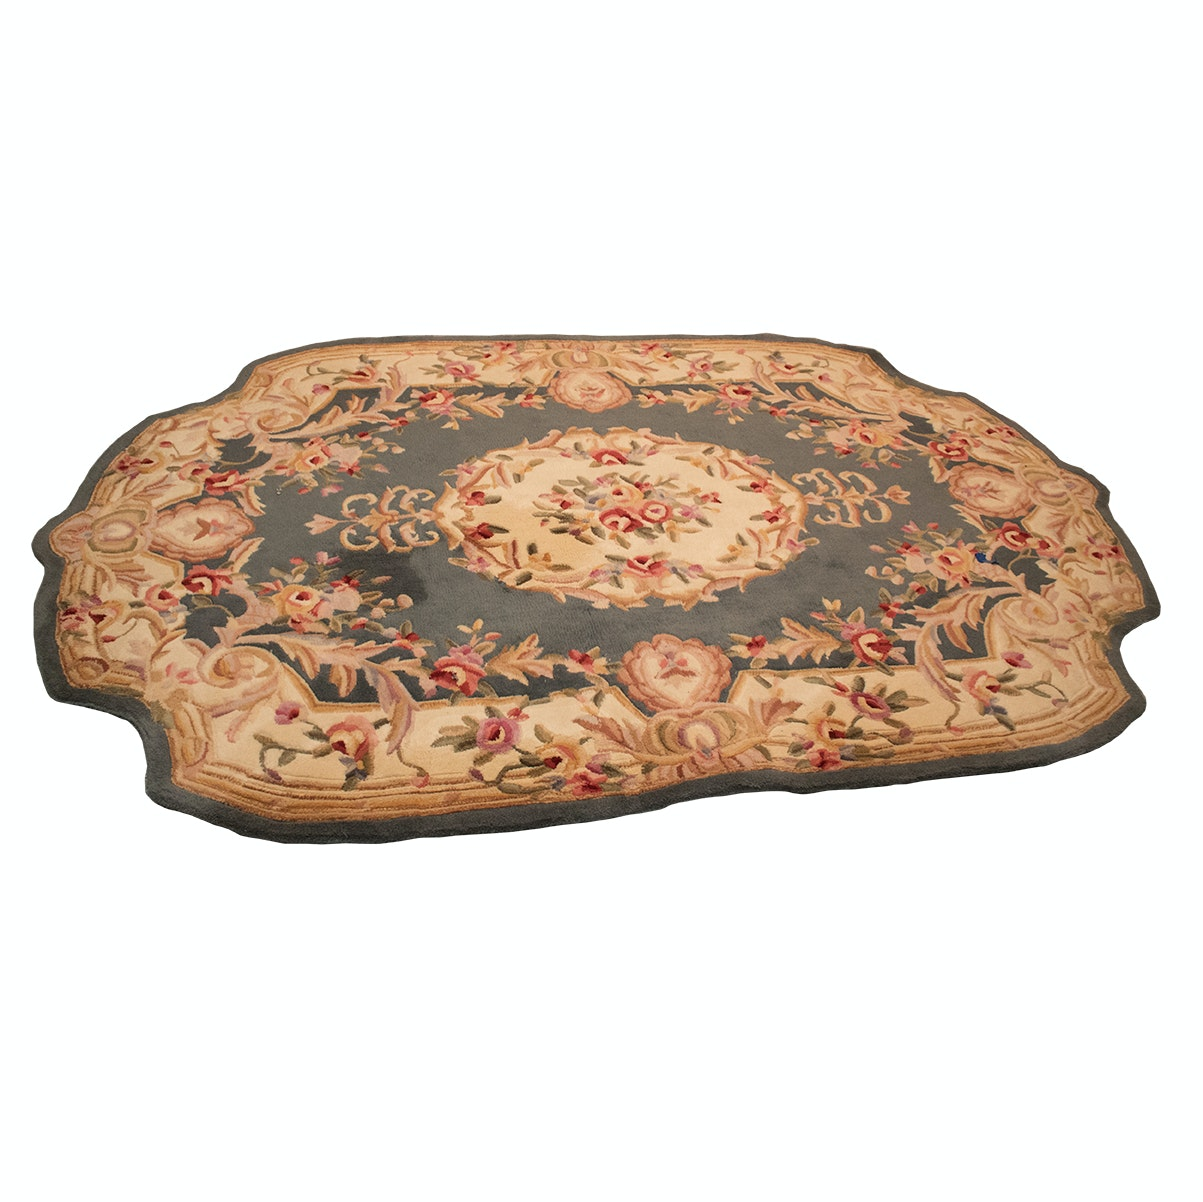 "Tufted Chinese Royal Palace ""Heathcliff"" Carved Wool Area Rug"